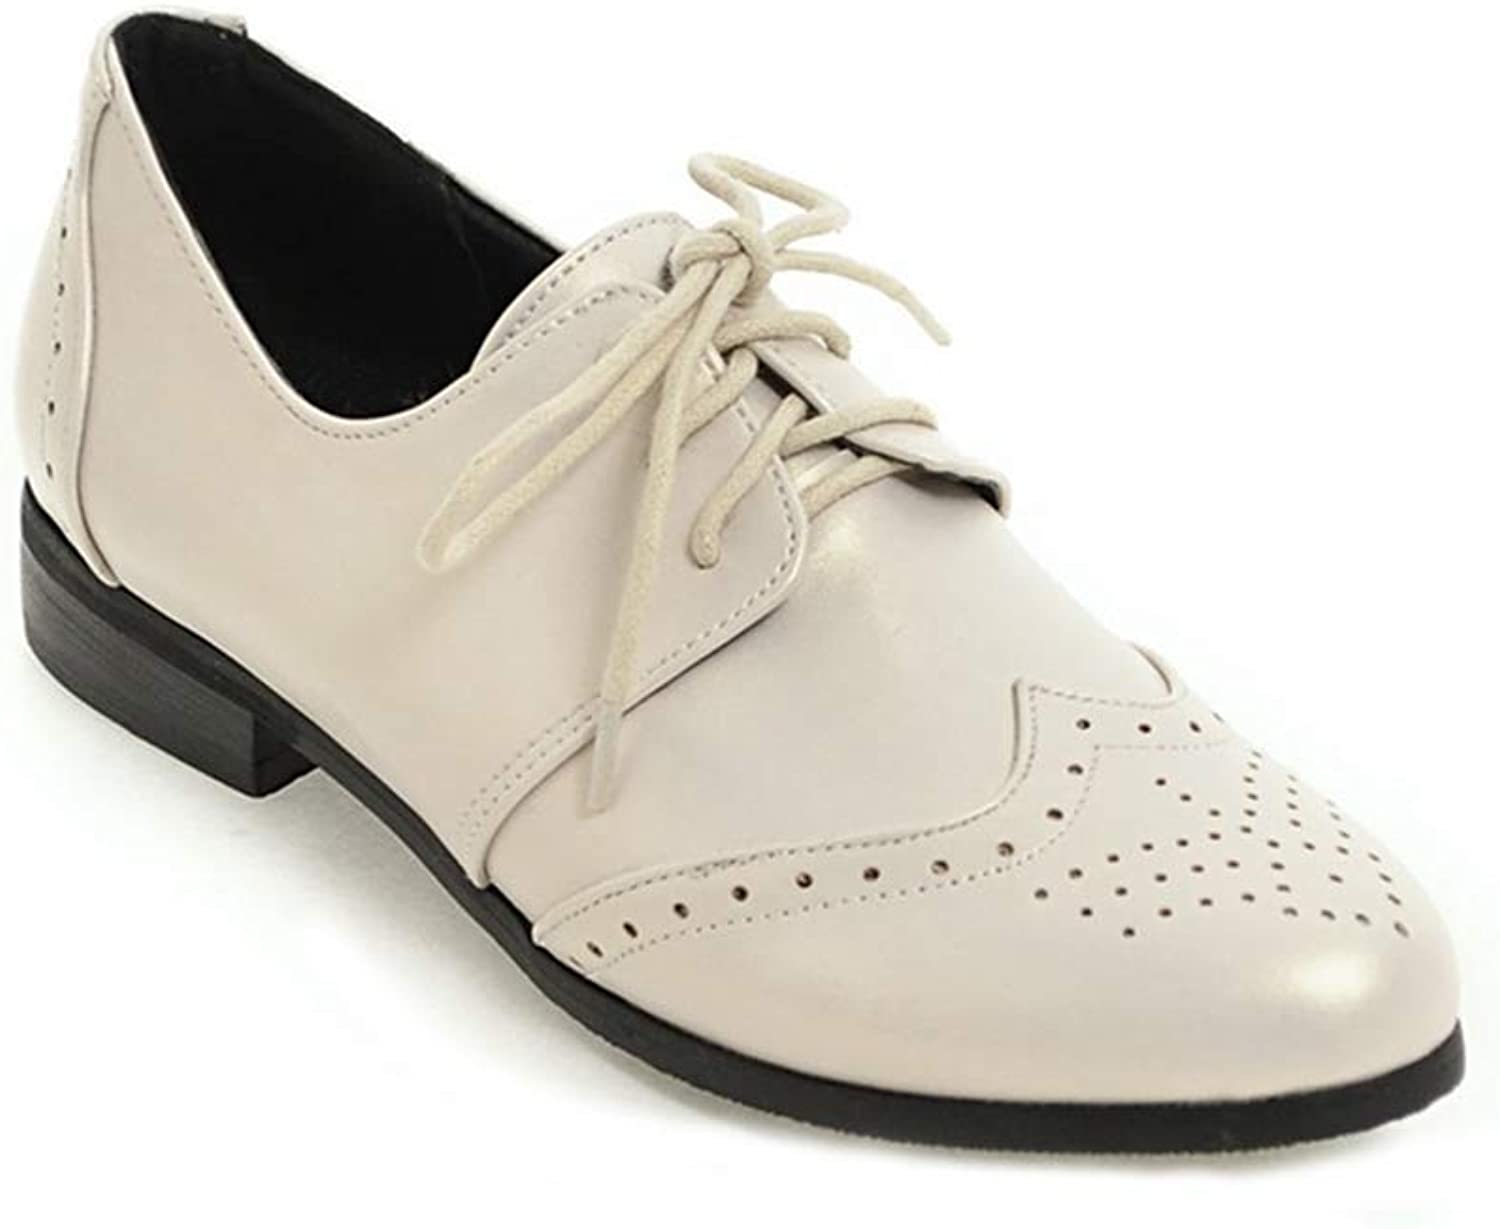 Elsa Wilcox Women Wingtip Perforated Lace Up Low Heel Vintage School Oxfords Brogues Flat Saddle Oxford shoes